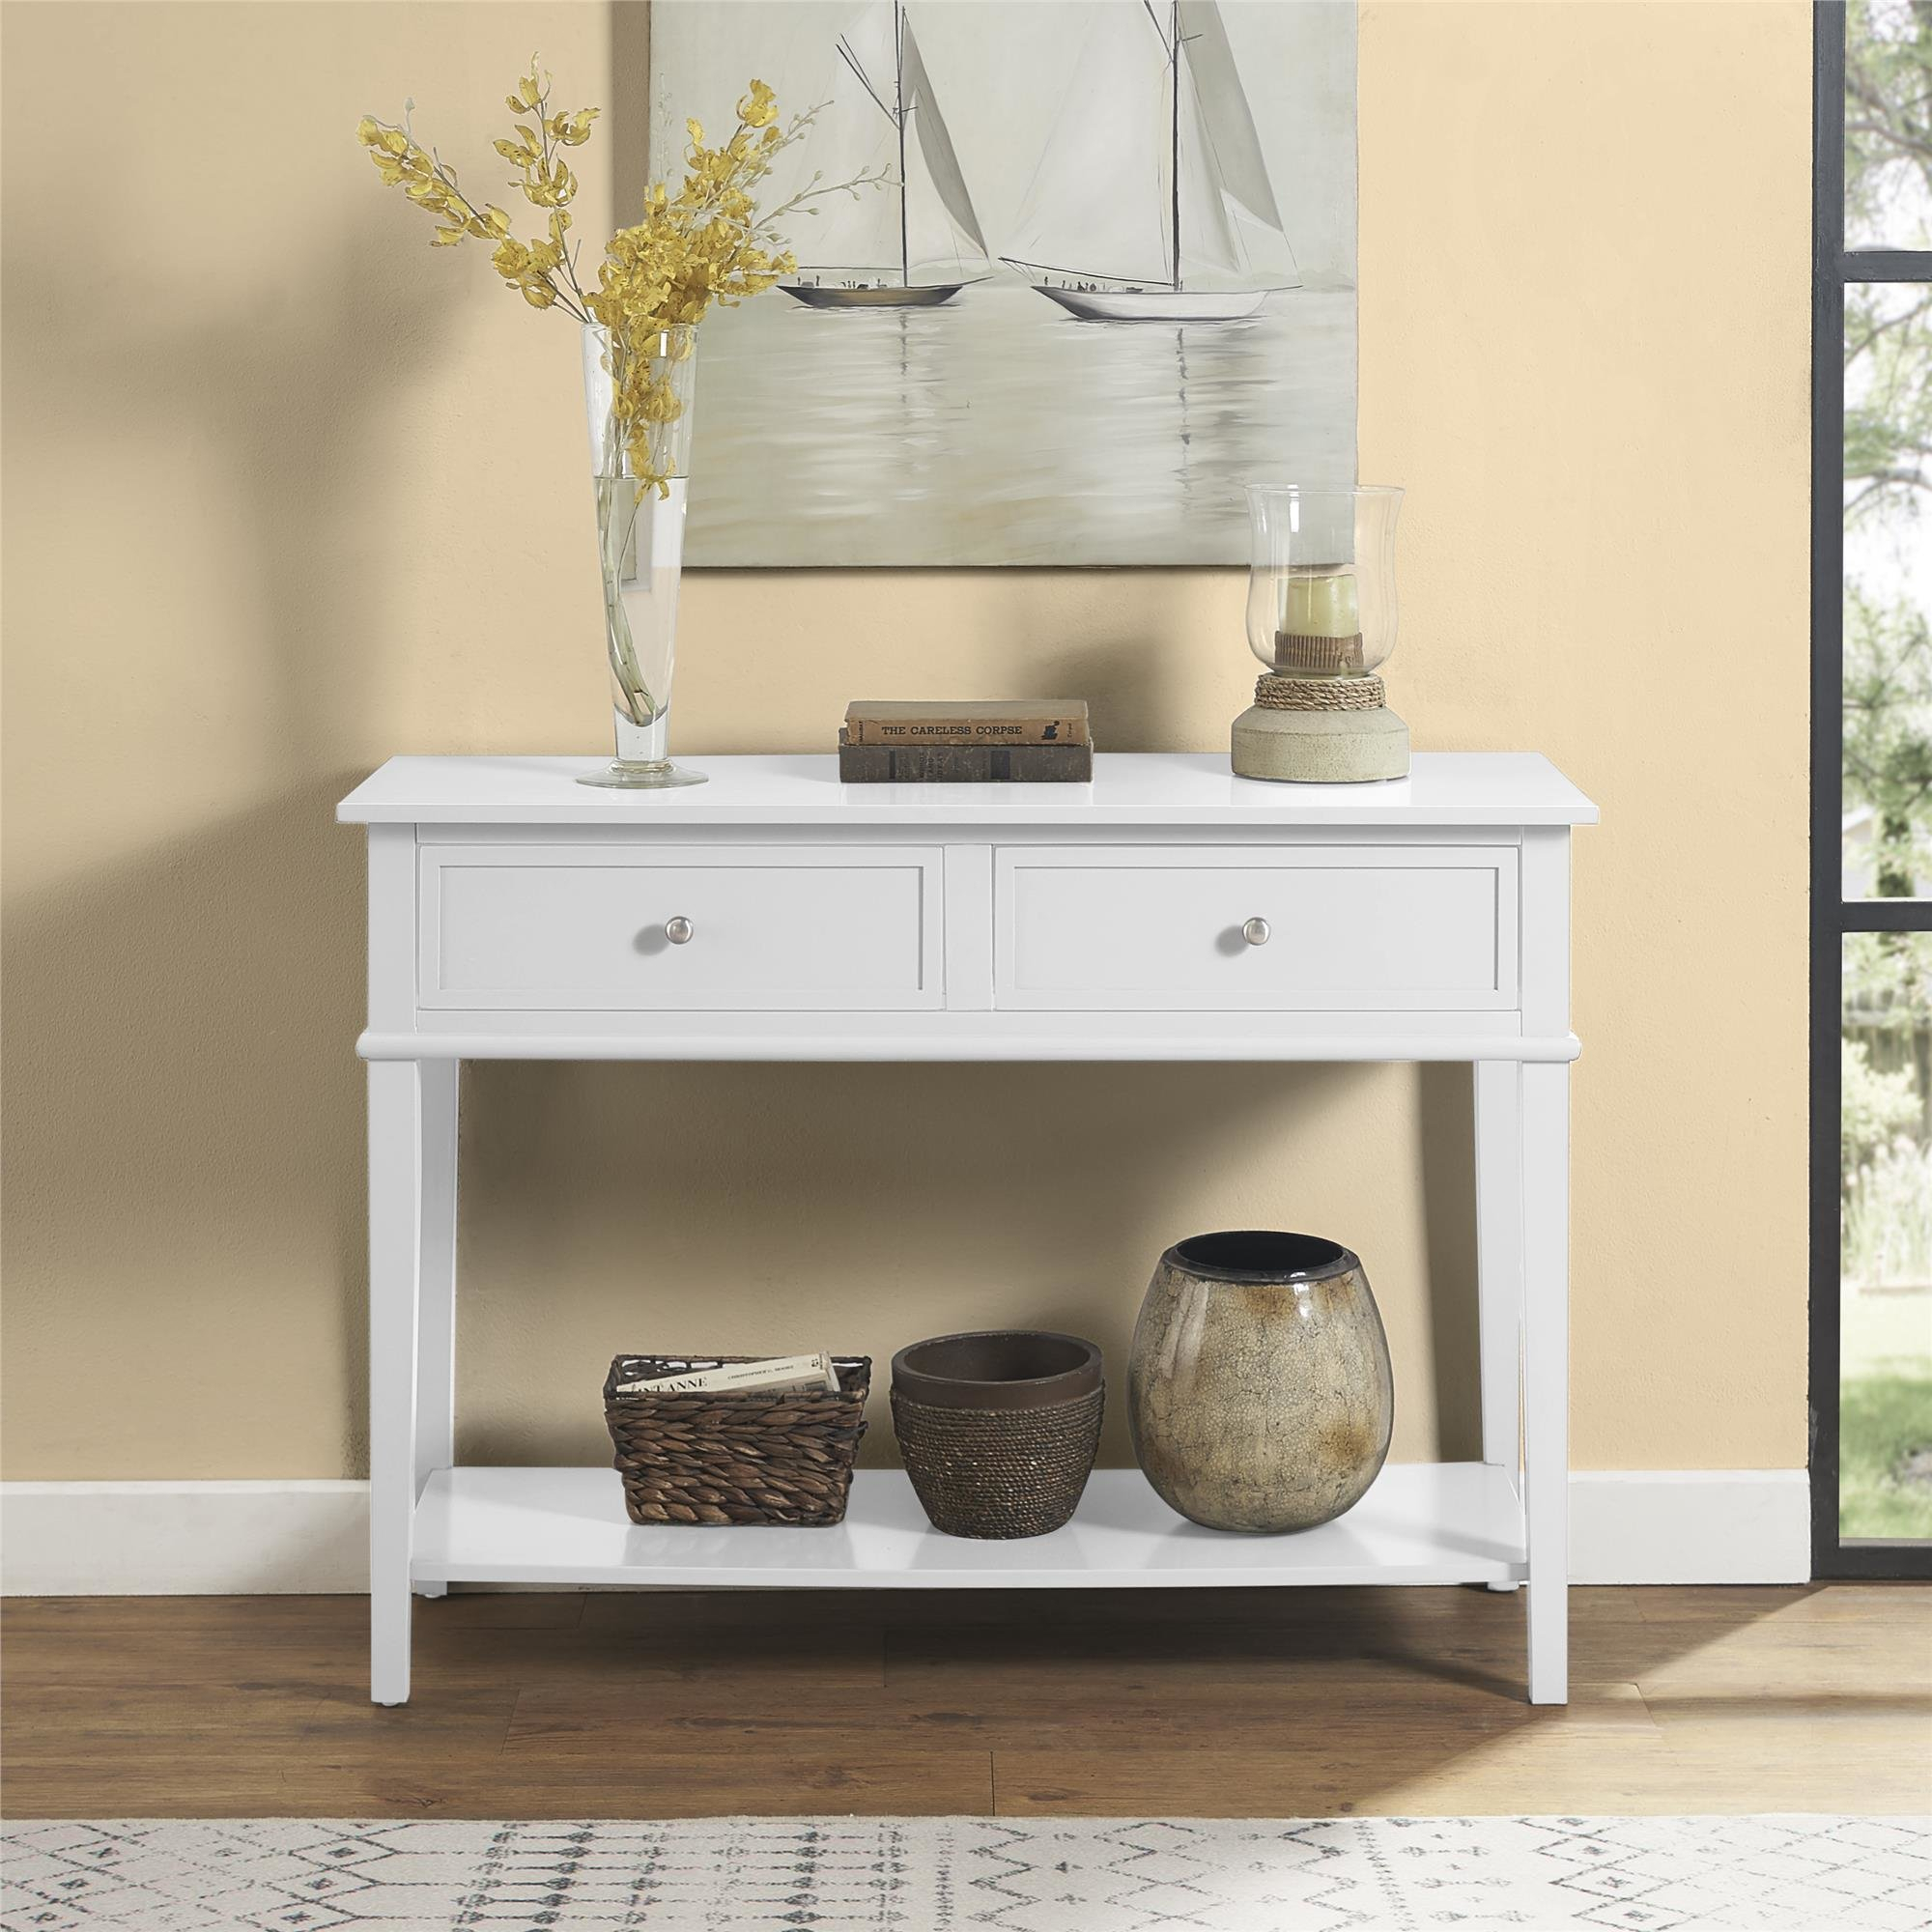 Extra Long Console Table | Wayfair Pertaining To Silviano 60 Inch Console Tables (Gallery 16 of 30)